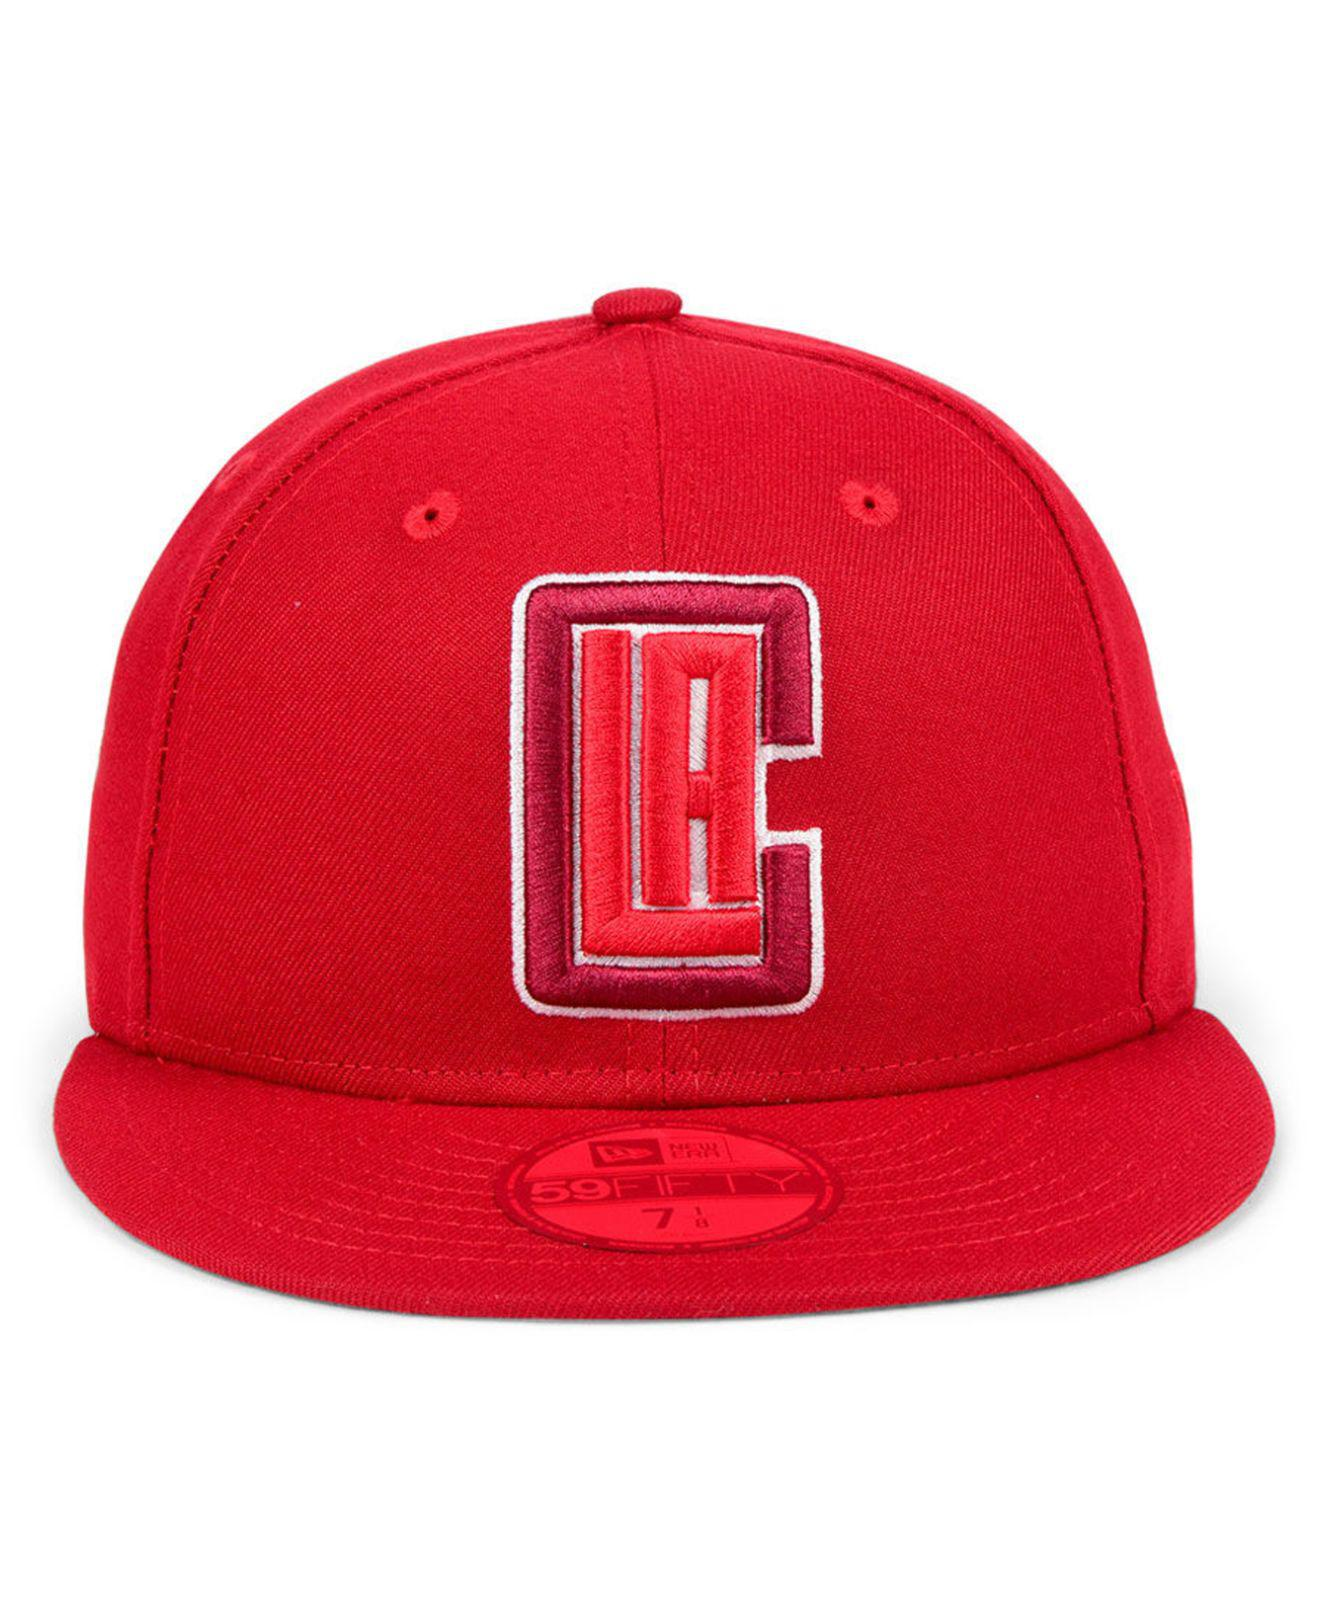 f16ec507 Lyst - KTZ Los Angeles Clippers Color Prism Pack 59fifty Fitted Cap in Red  for Men